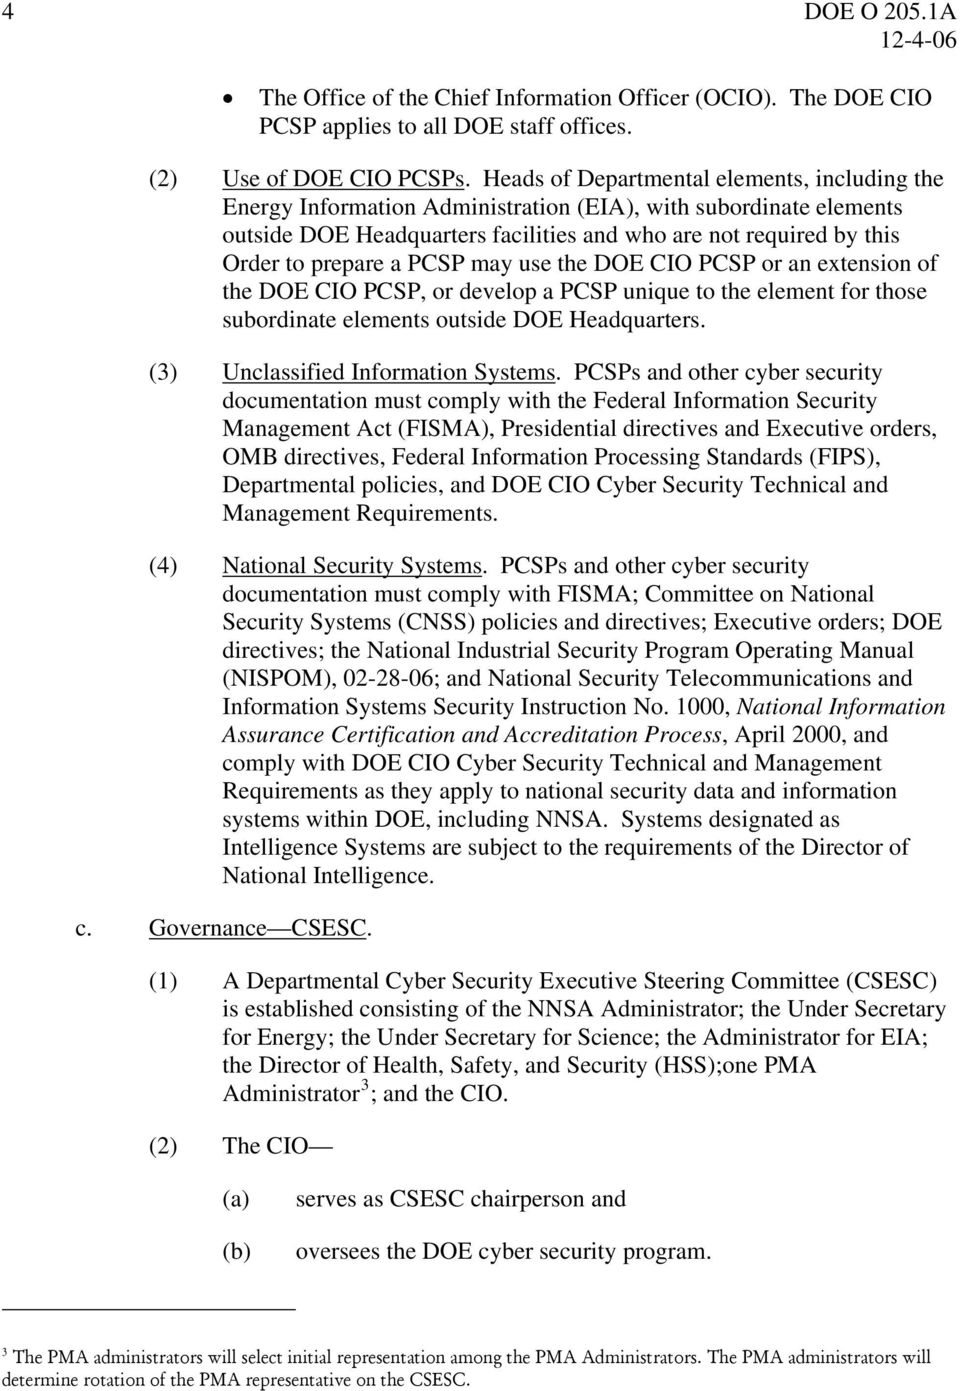 a PCSP may use the DOE CIO PCSP or an extension of the DOE CIO PCSP, or develop a PCSP unique to the element for those subordinate elements outside DOE Headquarters.